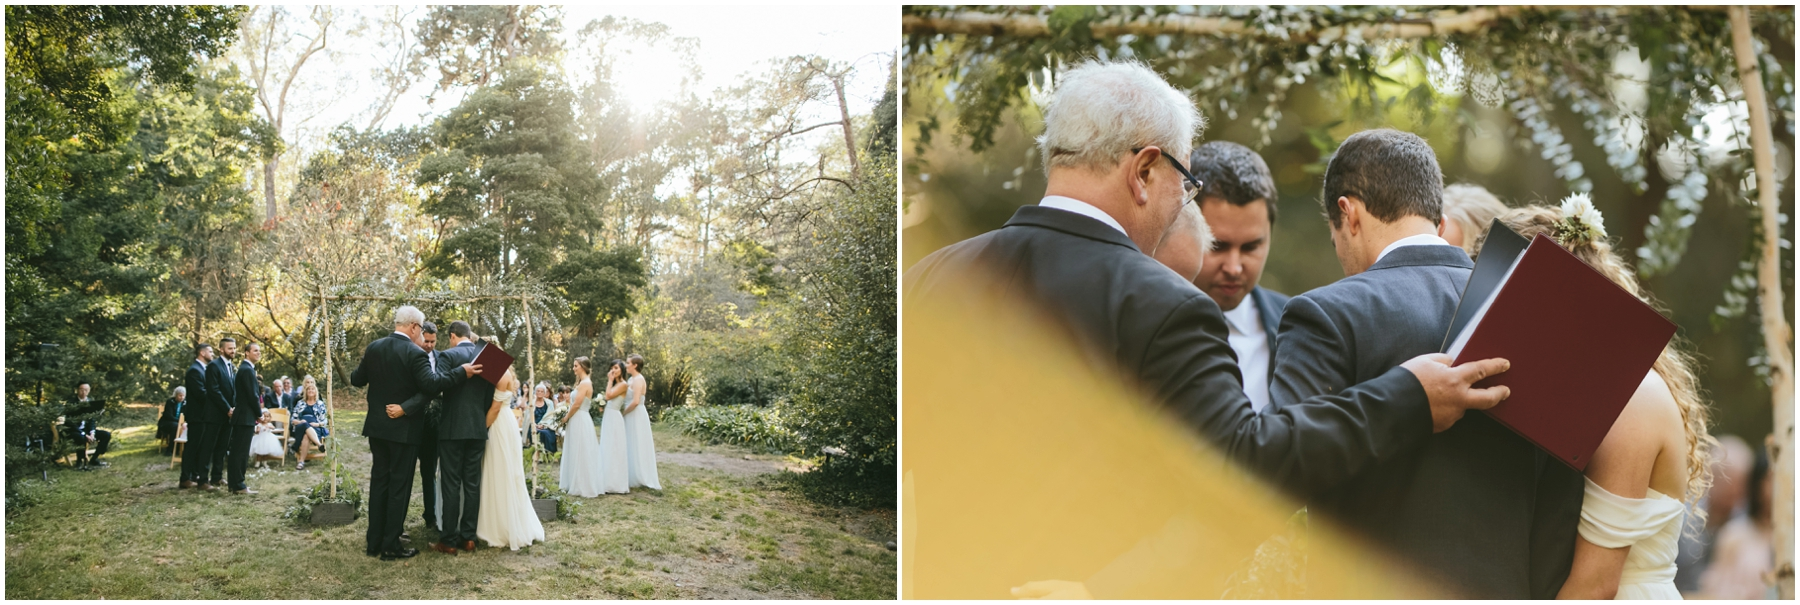 Emily+Paul-WEDDING_KellyBoitanoPhotography_0081